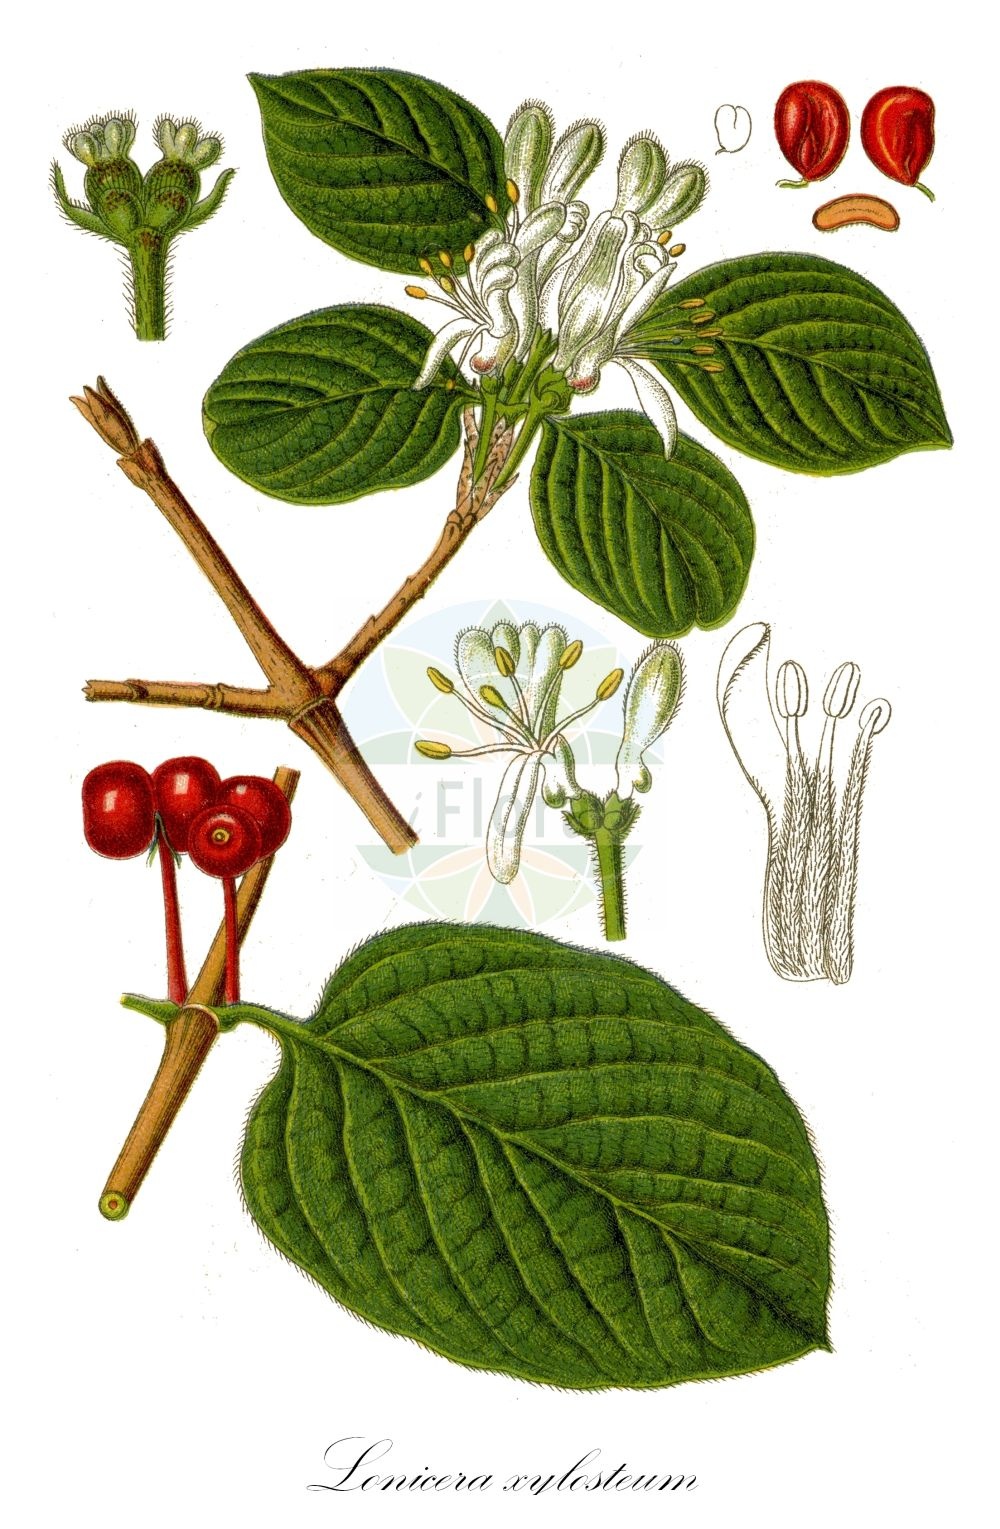 Historische Abbildung von Lonicera xylosteum (Rote Heckenkirsche - Fly Honeysuckle). Das Bild zeigt Blatt, Bluete, Frucht und Same. ---- Historical Drawing of Lonicera xylosteum (Rote Heckenkirsche - Fly Honeysuckle).The image is showing leaf, flower, fruit and seed.(Lonicera xylosteum,Rote Heckenkirsche,Fly Honeysuckle,Lonicera leiophylla,Lonicera luteiflora,Lonicera ochroleuca,,Beinholz,Rotes Geissblatt,Dwarf Honeysuckle,Lonicera,Heckenkirsche,Honeysuckle,Caprifoliaceae,Geissblattgewaechse,Honeysuckle family,Blatt,Bluete,Frucht,Same,leaf,flower,fruit,seed,Sturm (1796f))